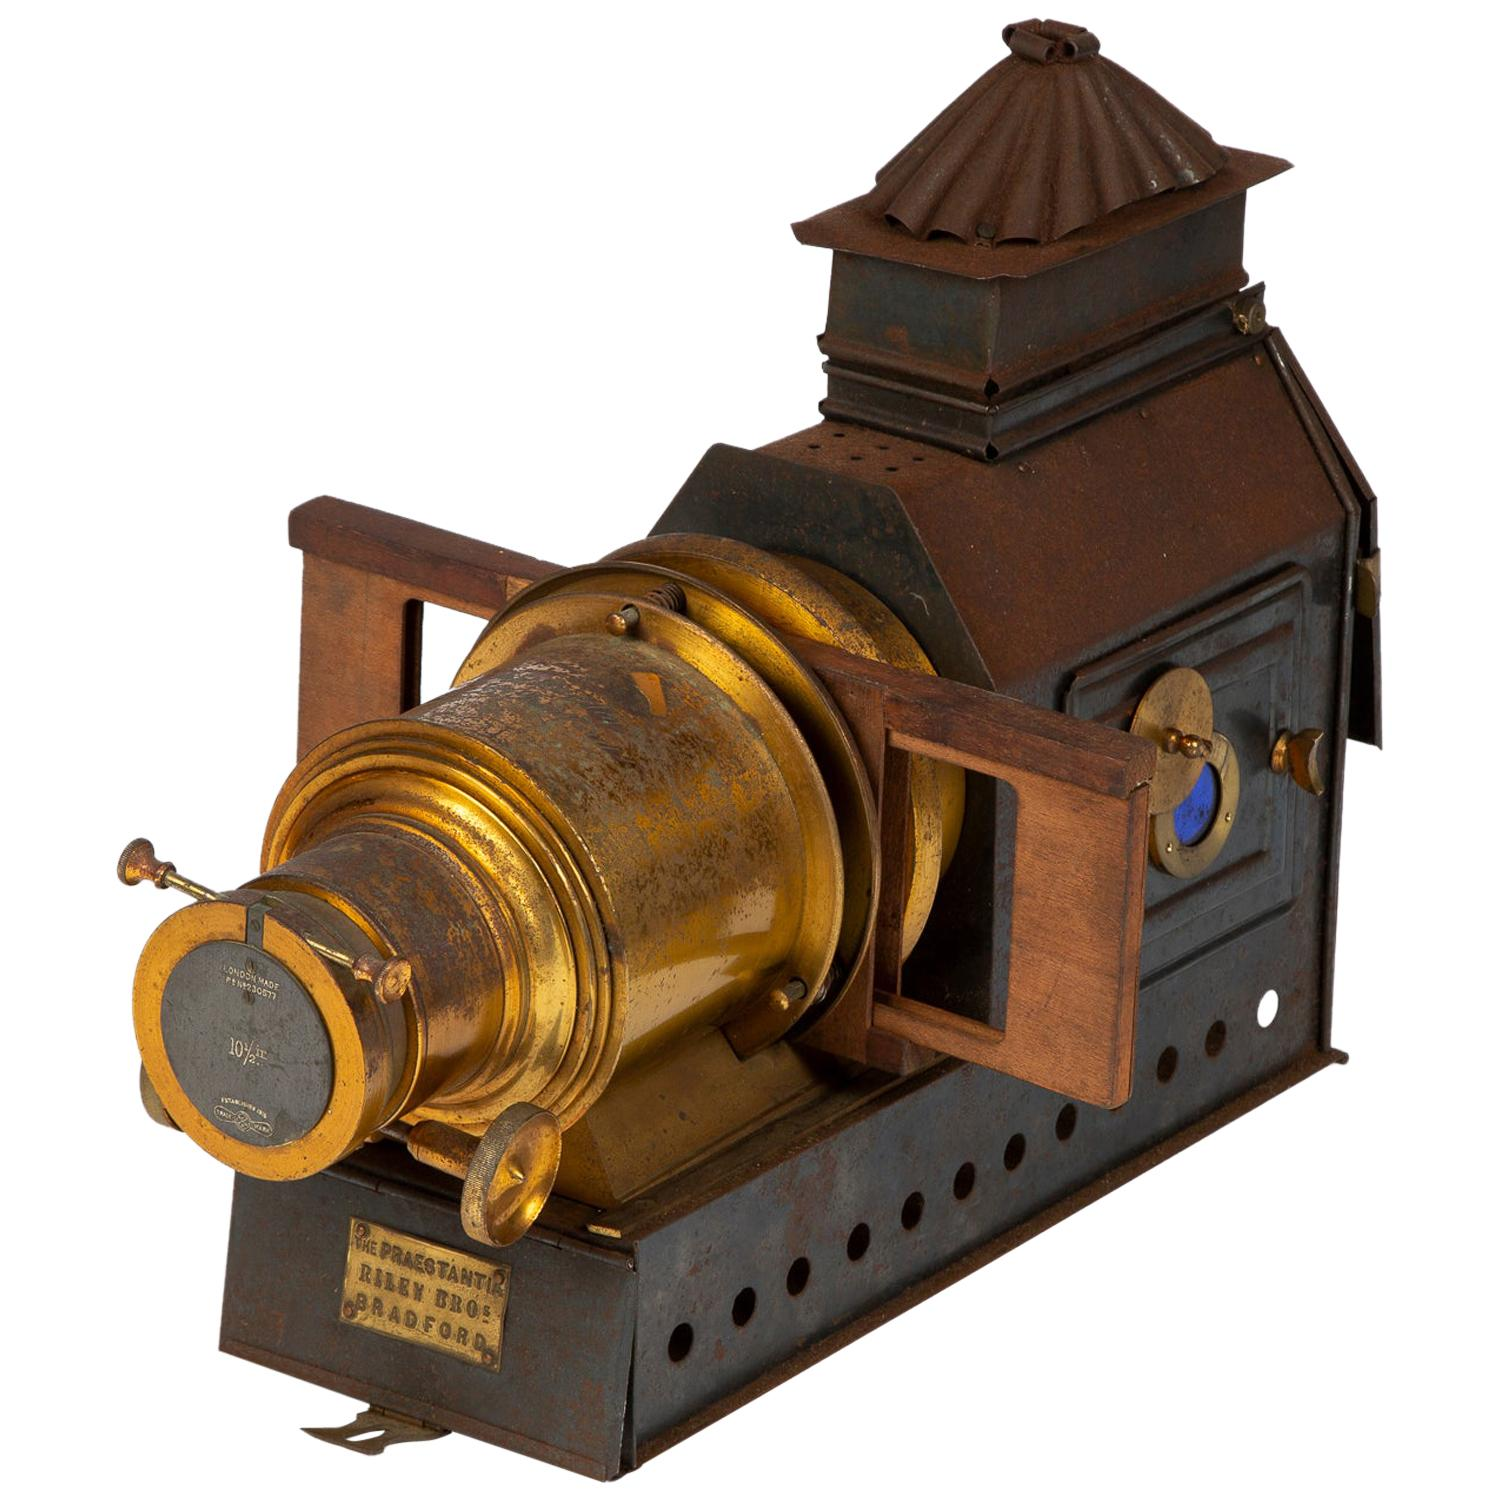 Magic Lantern Slide Projector by Riley Brothers, circa 1895